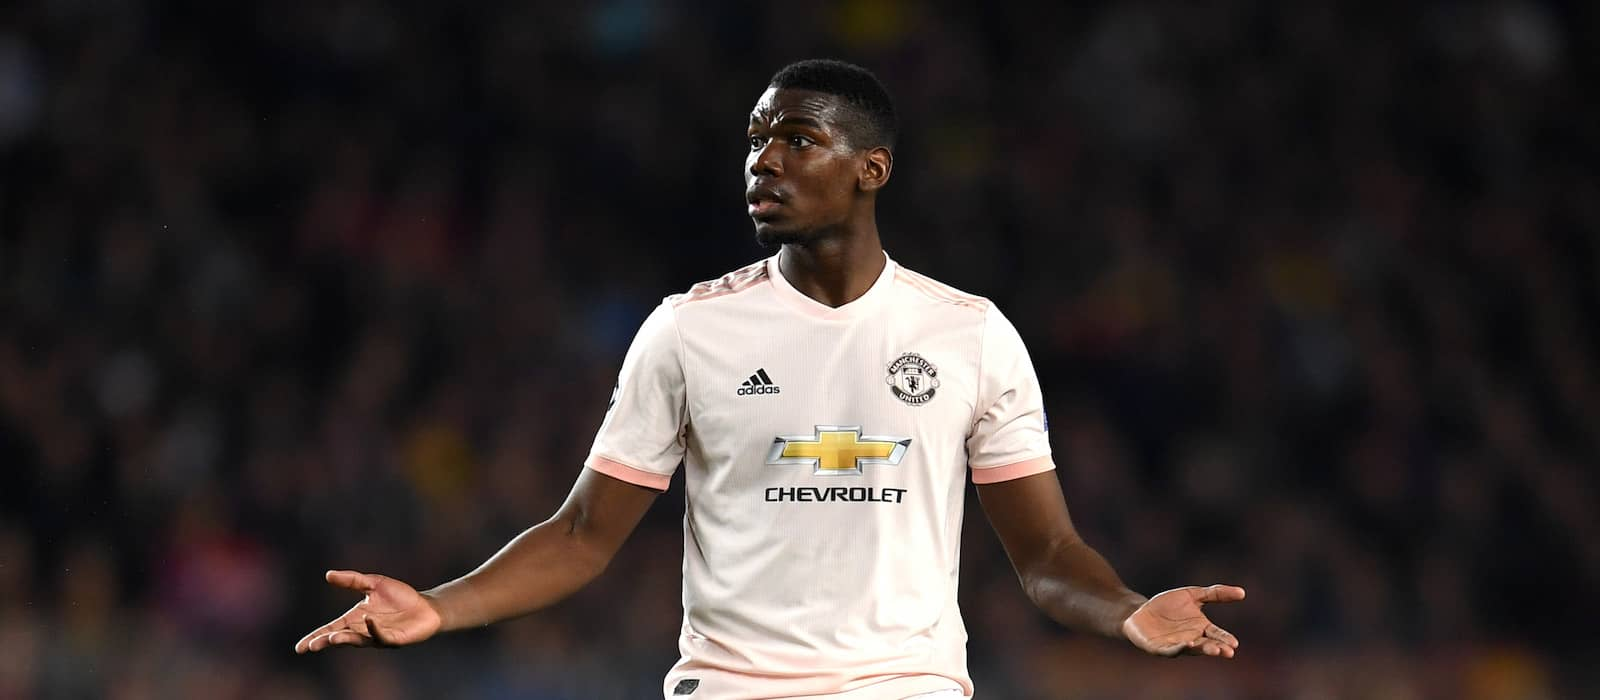 Agent Mino Raiola makes it clear Paul Pogba wants to leave Manchester United